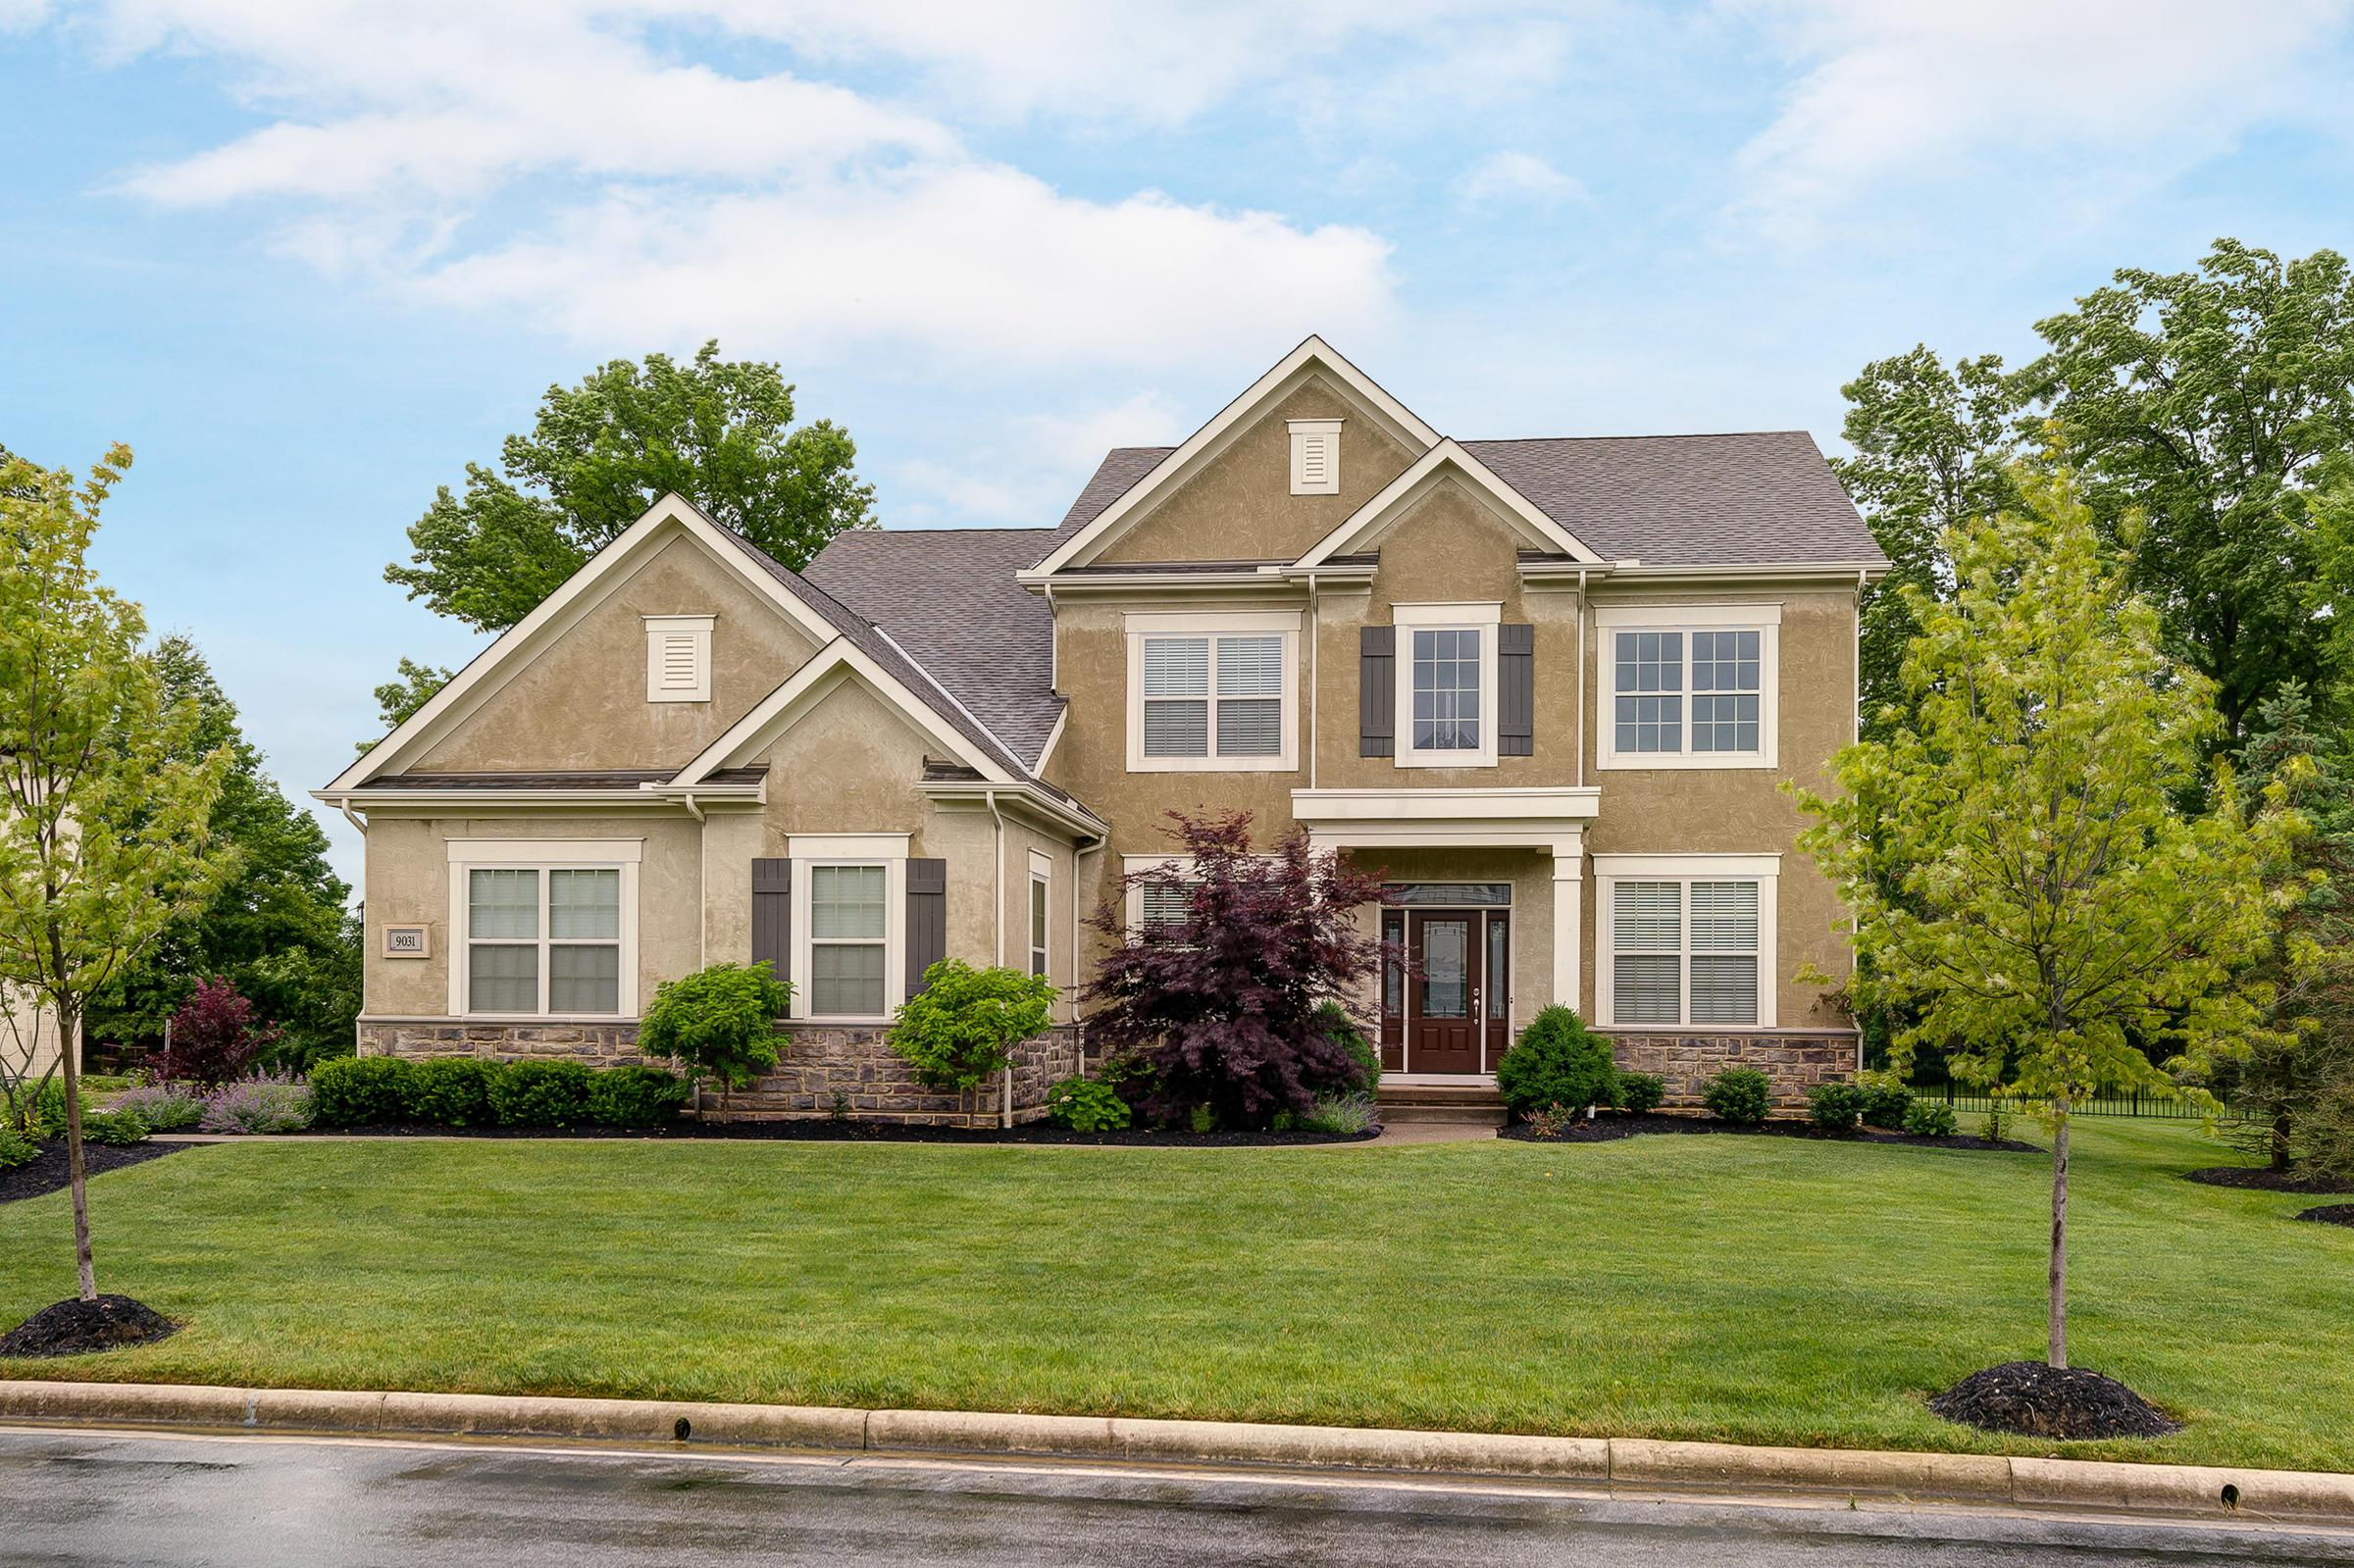 Photo of 9031 Shaffer Drive, Powell, OH 43065